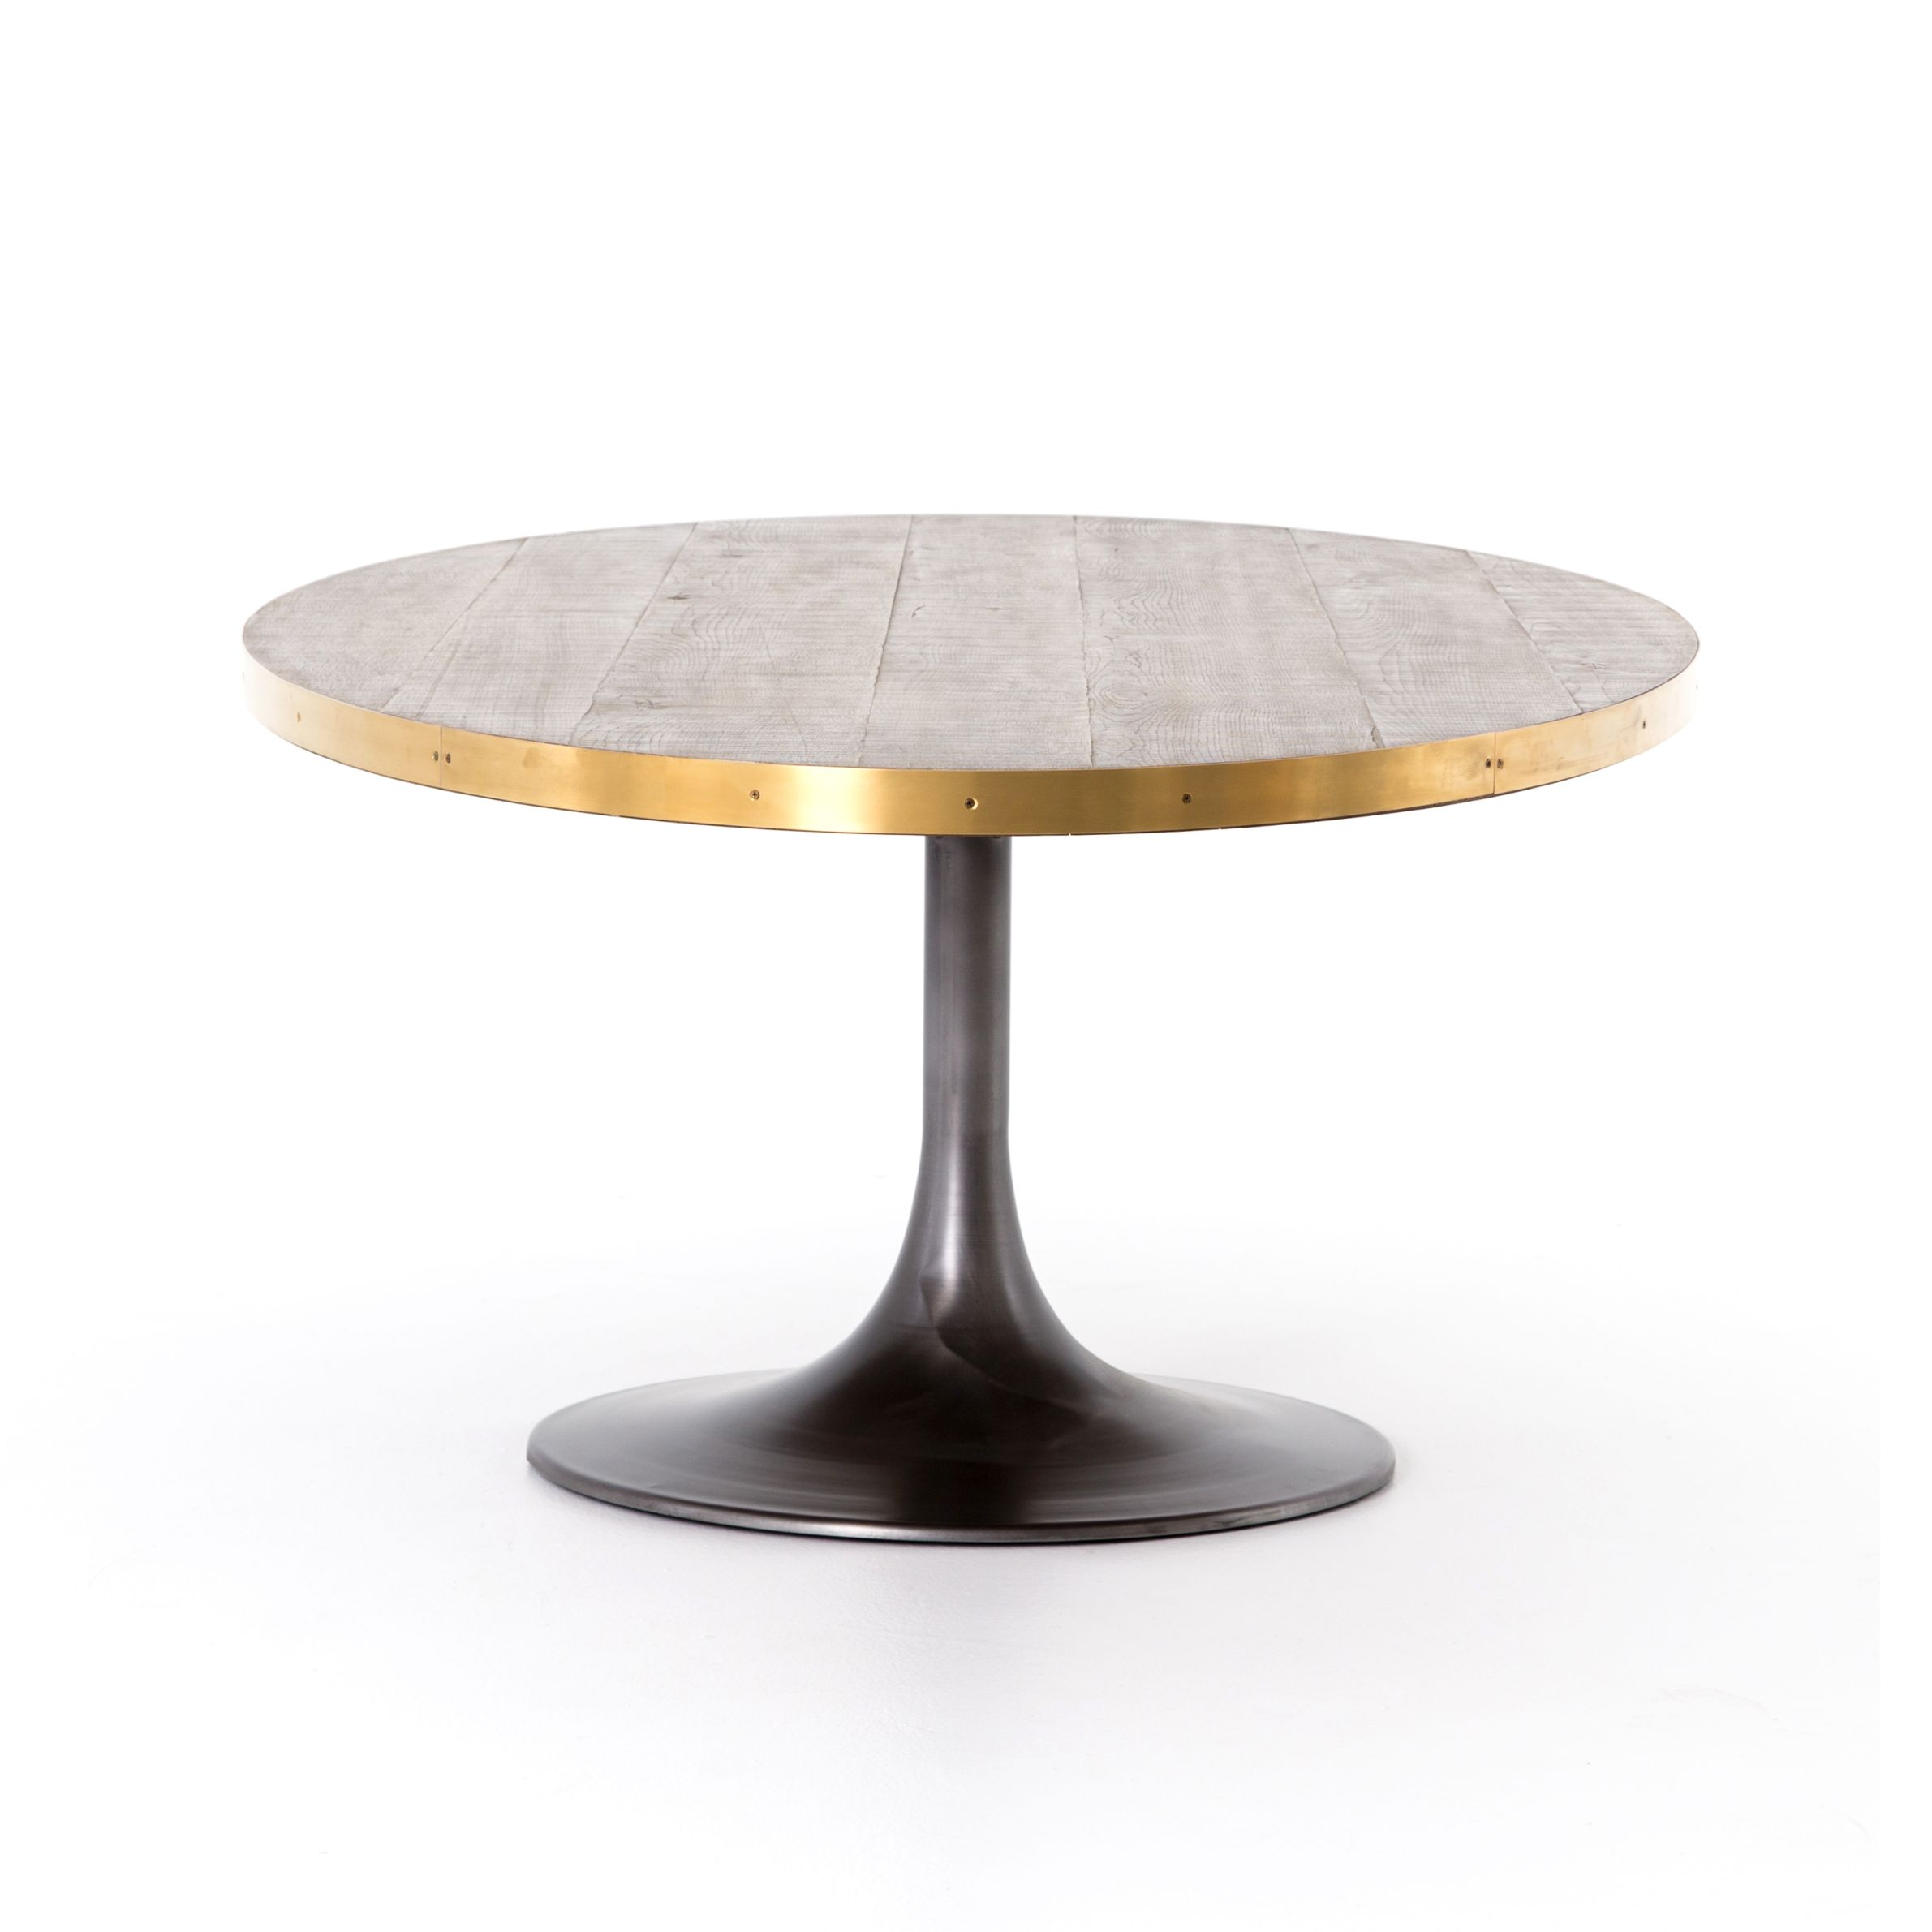 designer saarinen tulip table voga round products dining eero replica